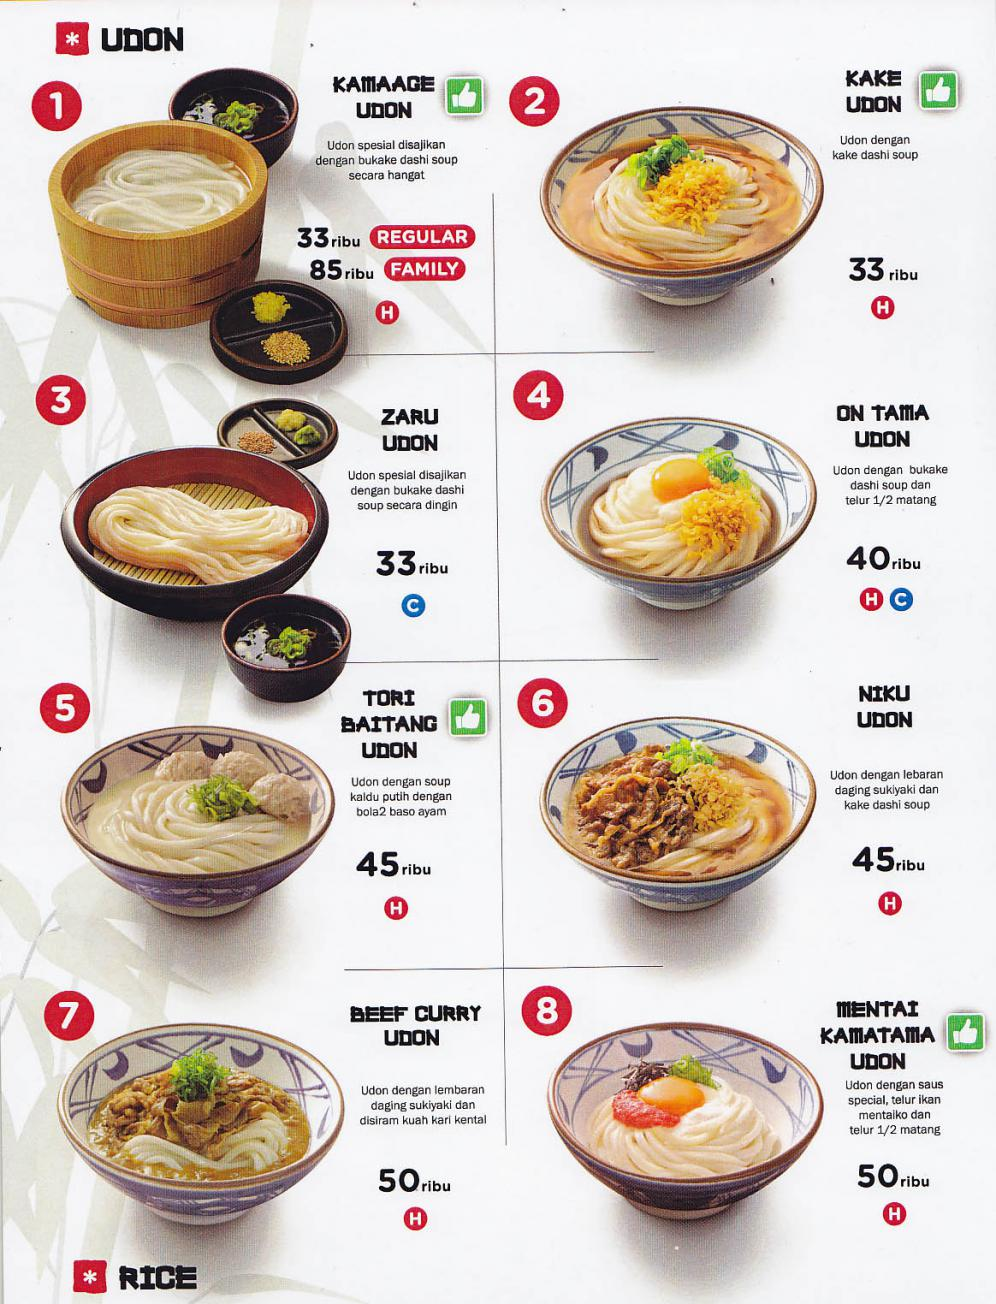 Marugame Udon Full Menu Listing. Image taken from here.